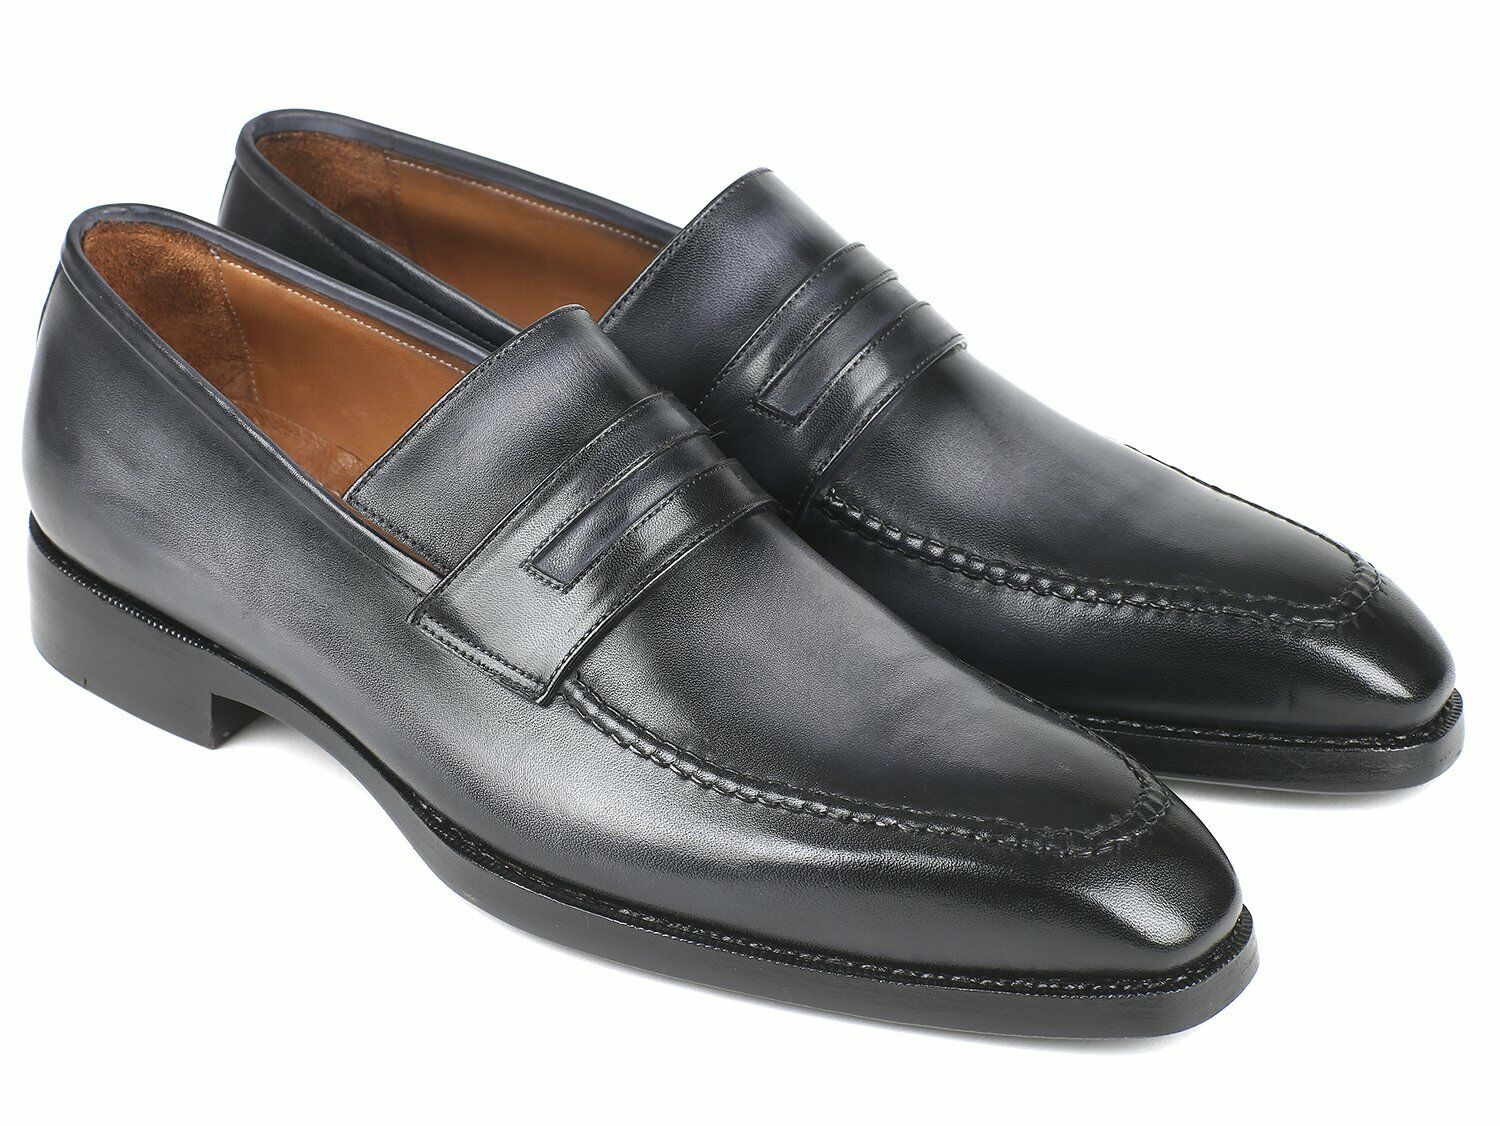 Paul Parkman Grigio Burnished Goodyear Welted Loafers (ID#37LFGRY)